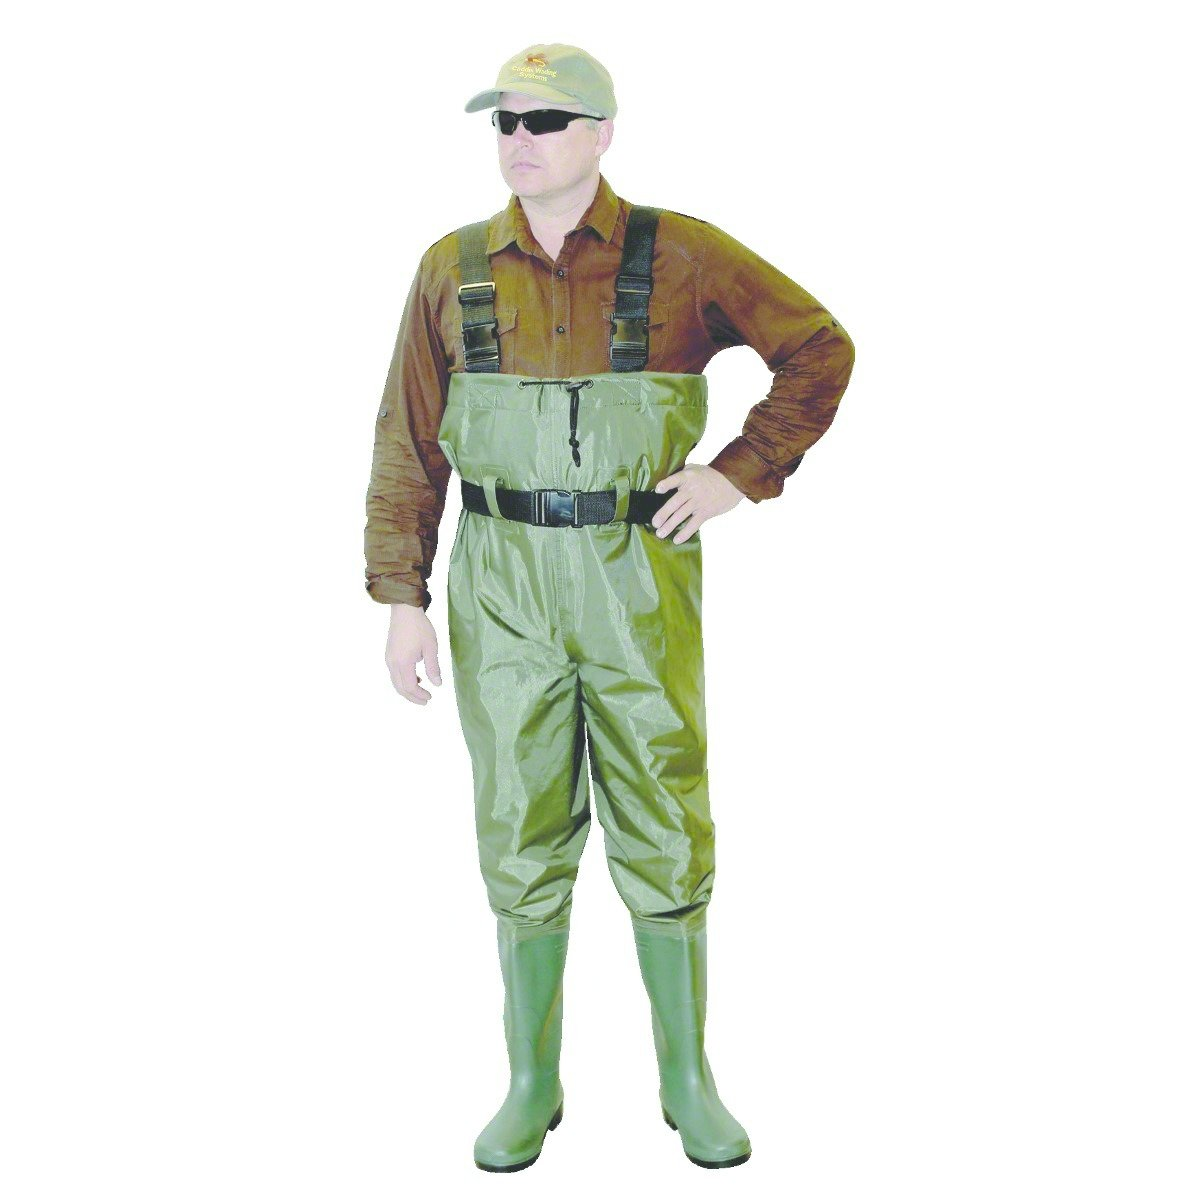 【激安大特価!】 Caddis PVC Ultra Light B01DFKKUHO PVC Chest Chest Wader B01DFKKUHO SZ13, びっくり!House:d71a732f --- ballyshannonshow.com